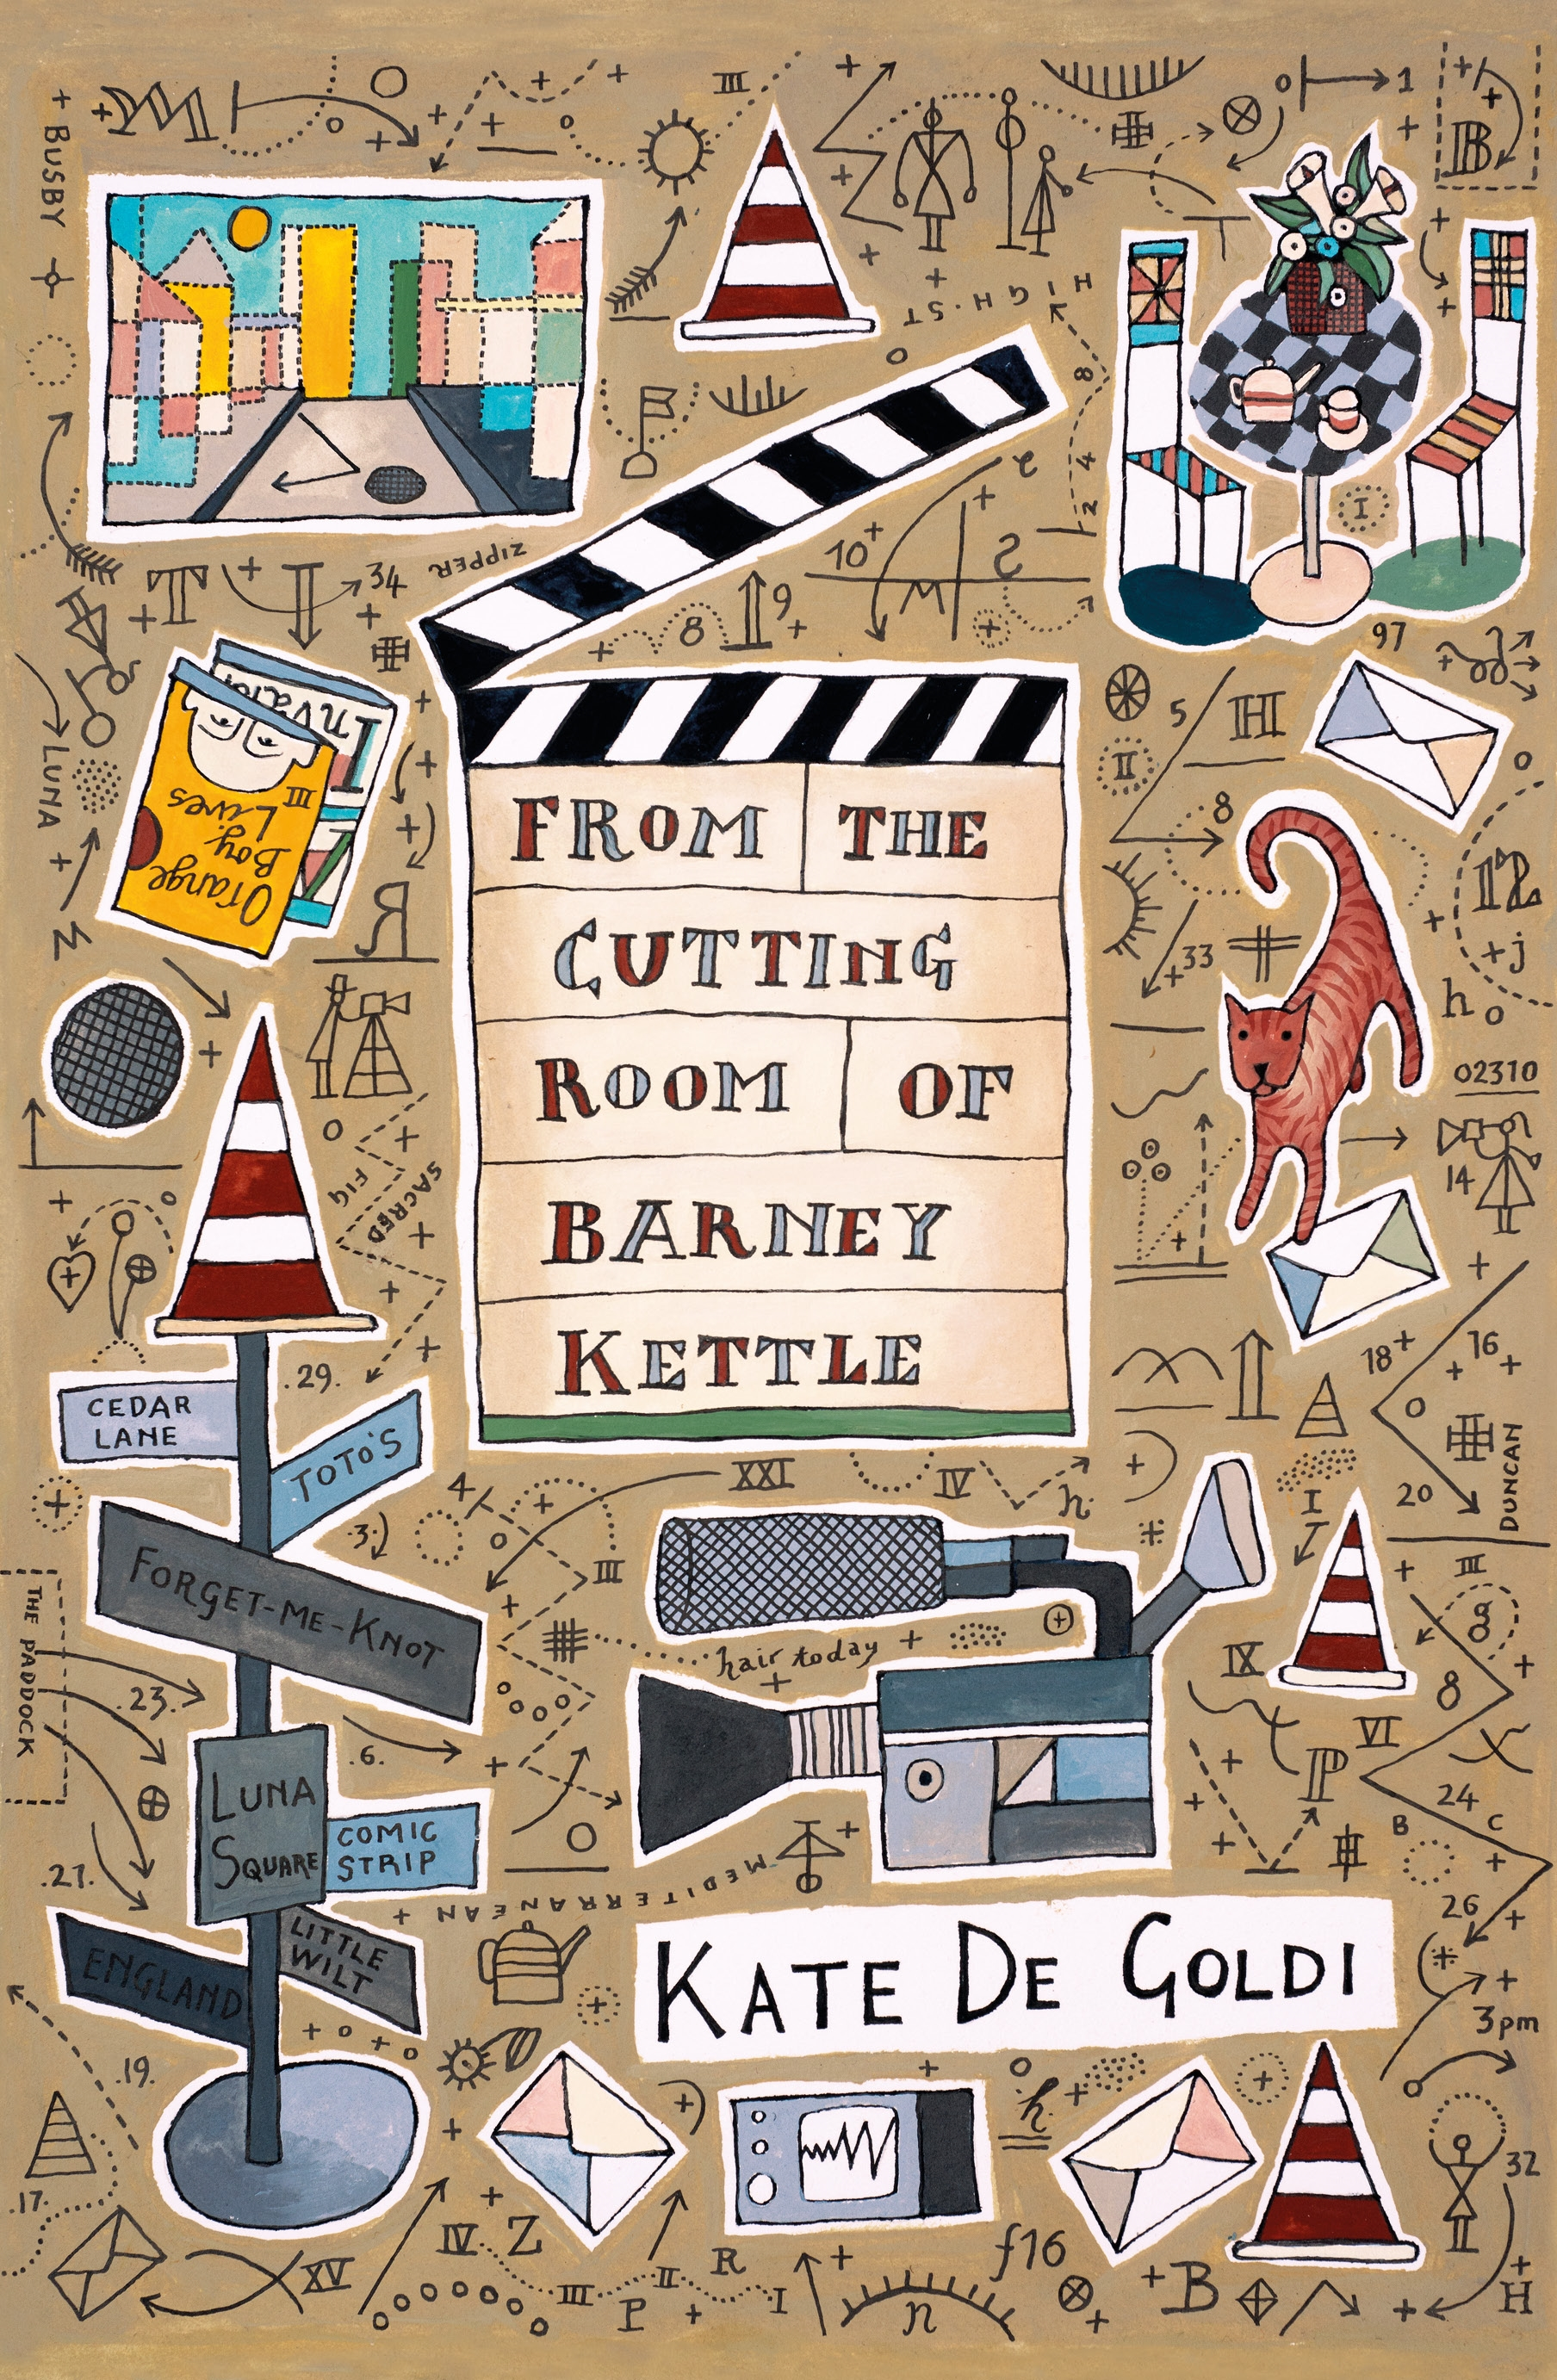 From the Cutting Room of Barney Kettle by Kate De Goldi - Penguin ...